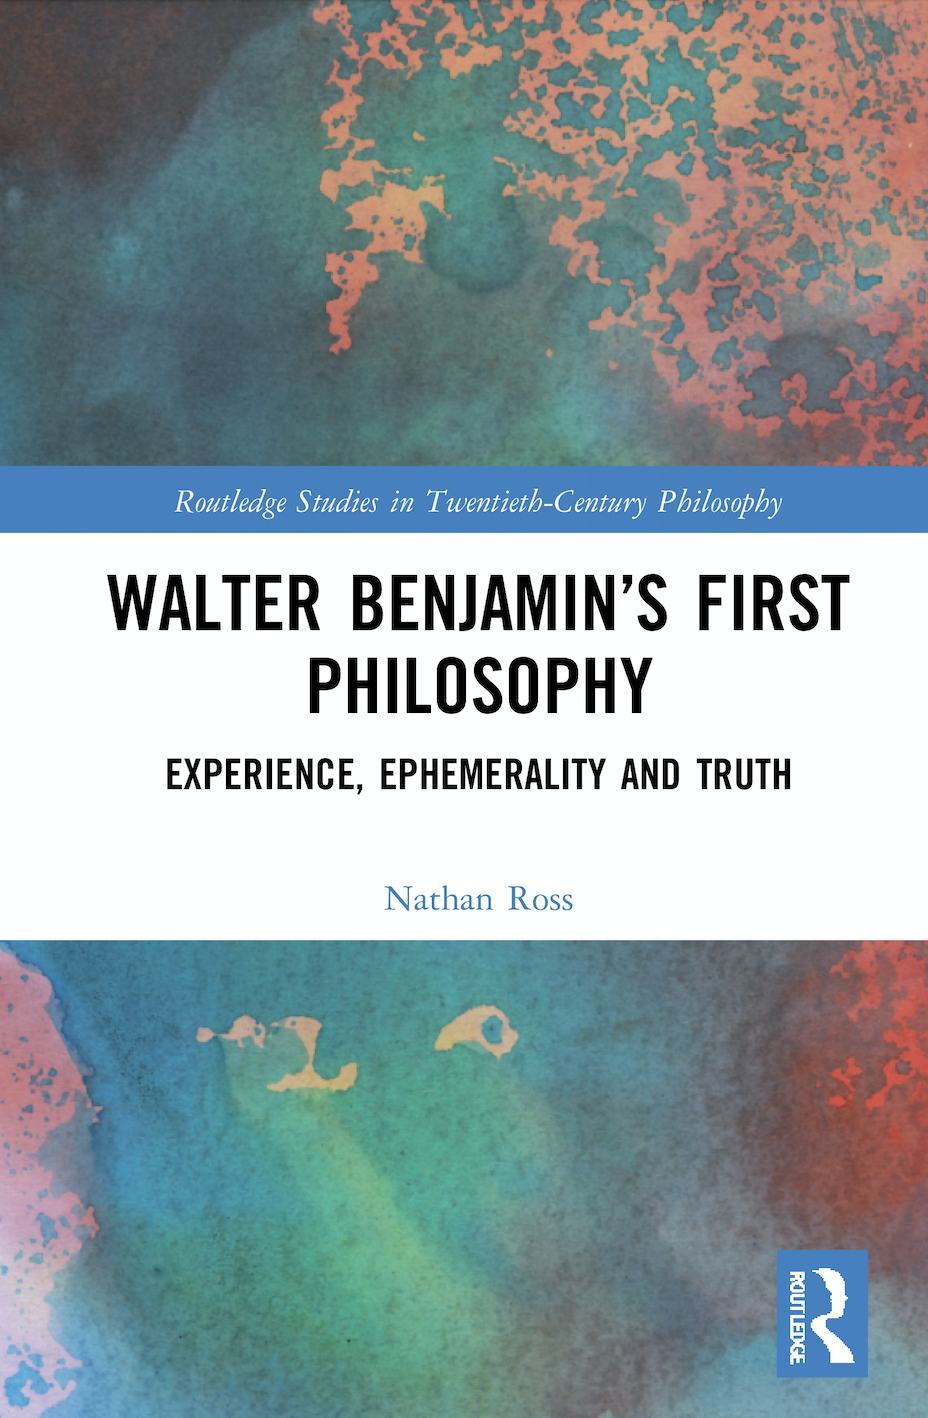 N. Ross. Walter Benjamin's First Philosophy. Experience, Ephemerality and Truth